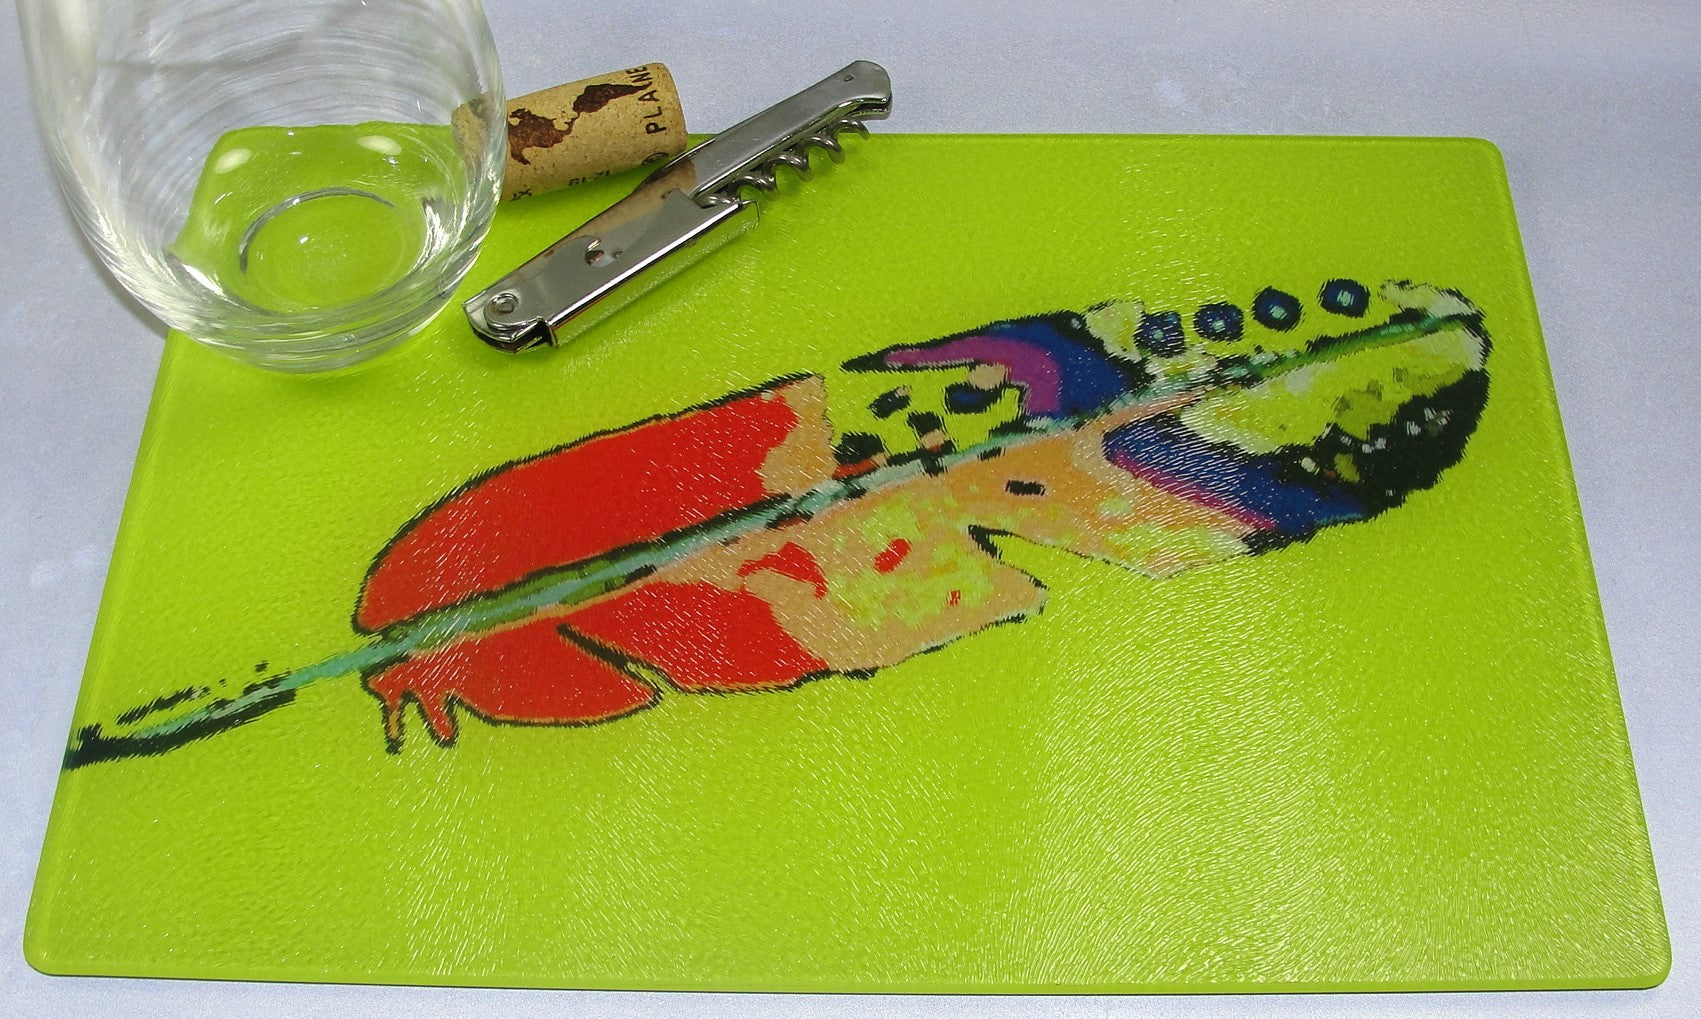 Cutting Board, Glass; Feather on Yellow Background